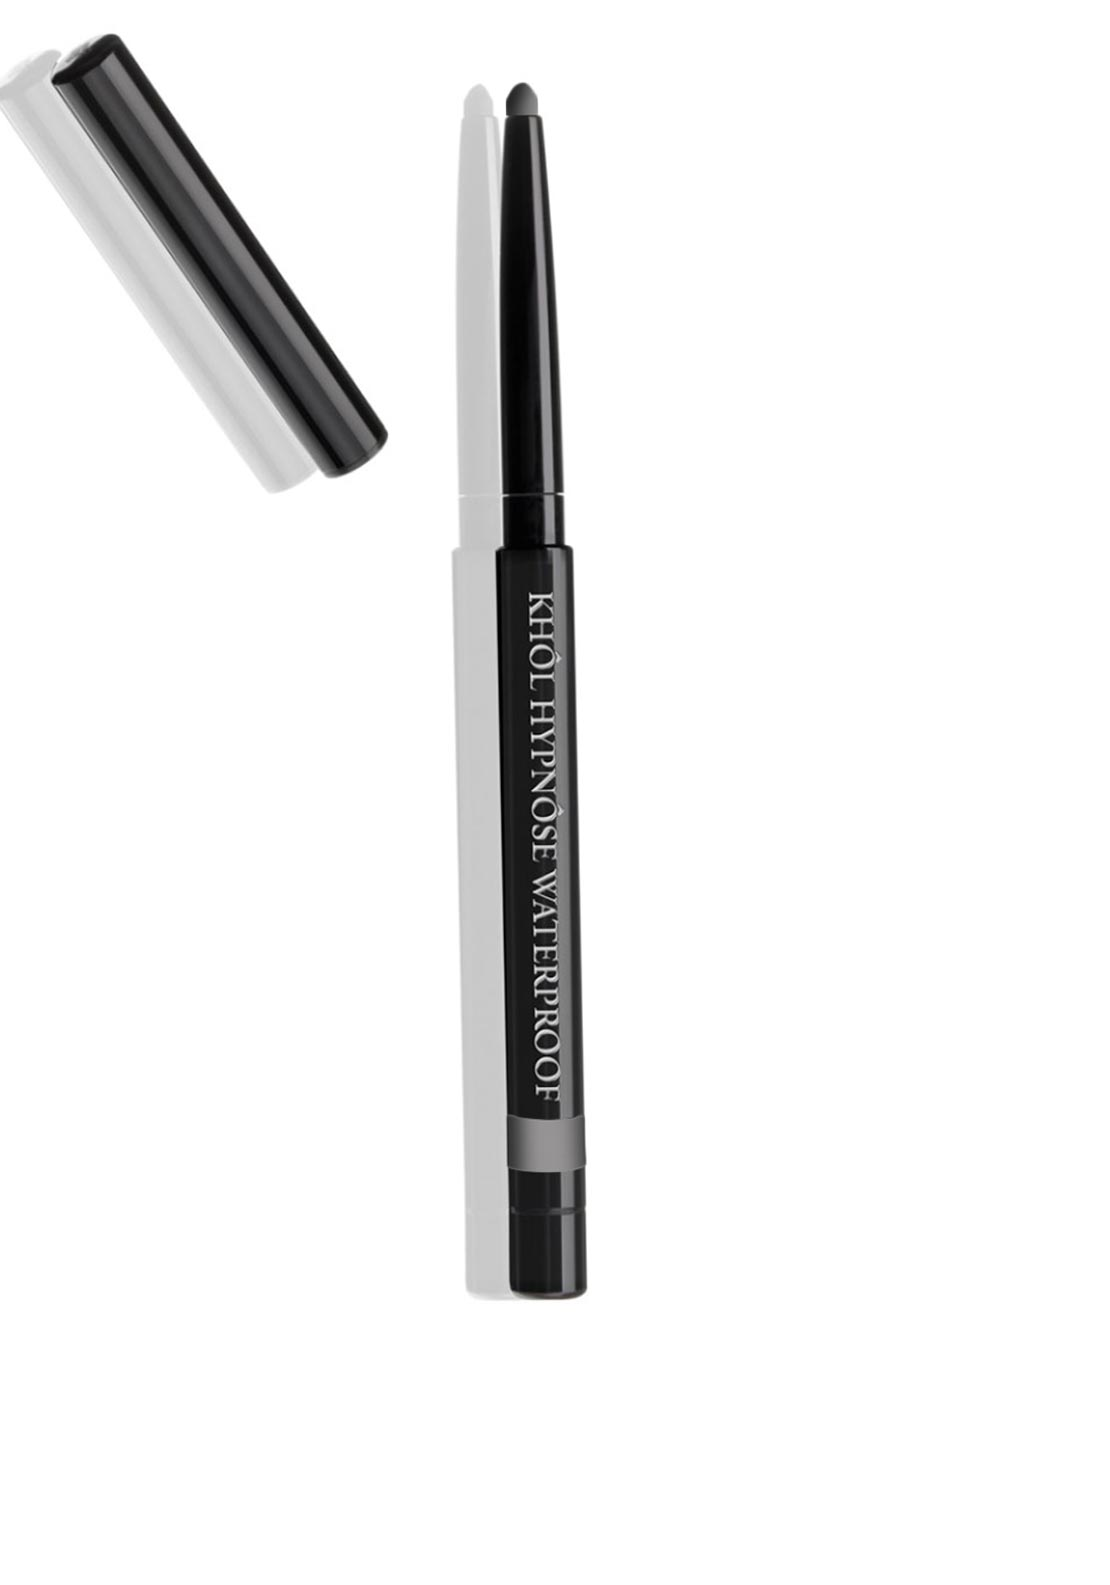 Lancôme Khôl Hypnôse Waterproof Twist Up Eye Pencil, Gris Rivoli 09